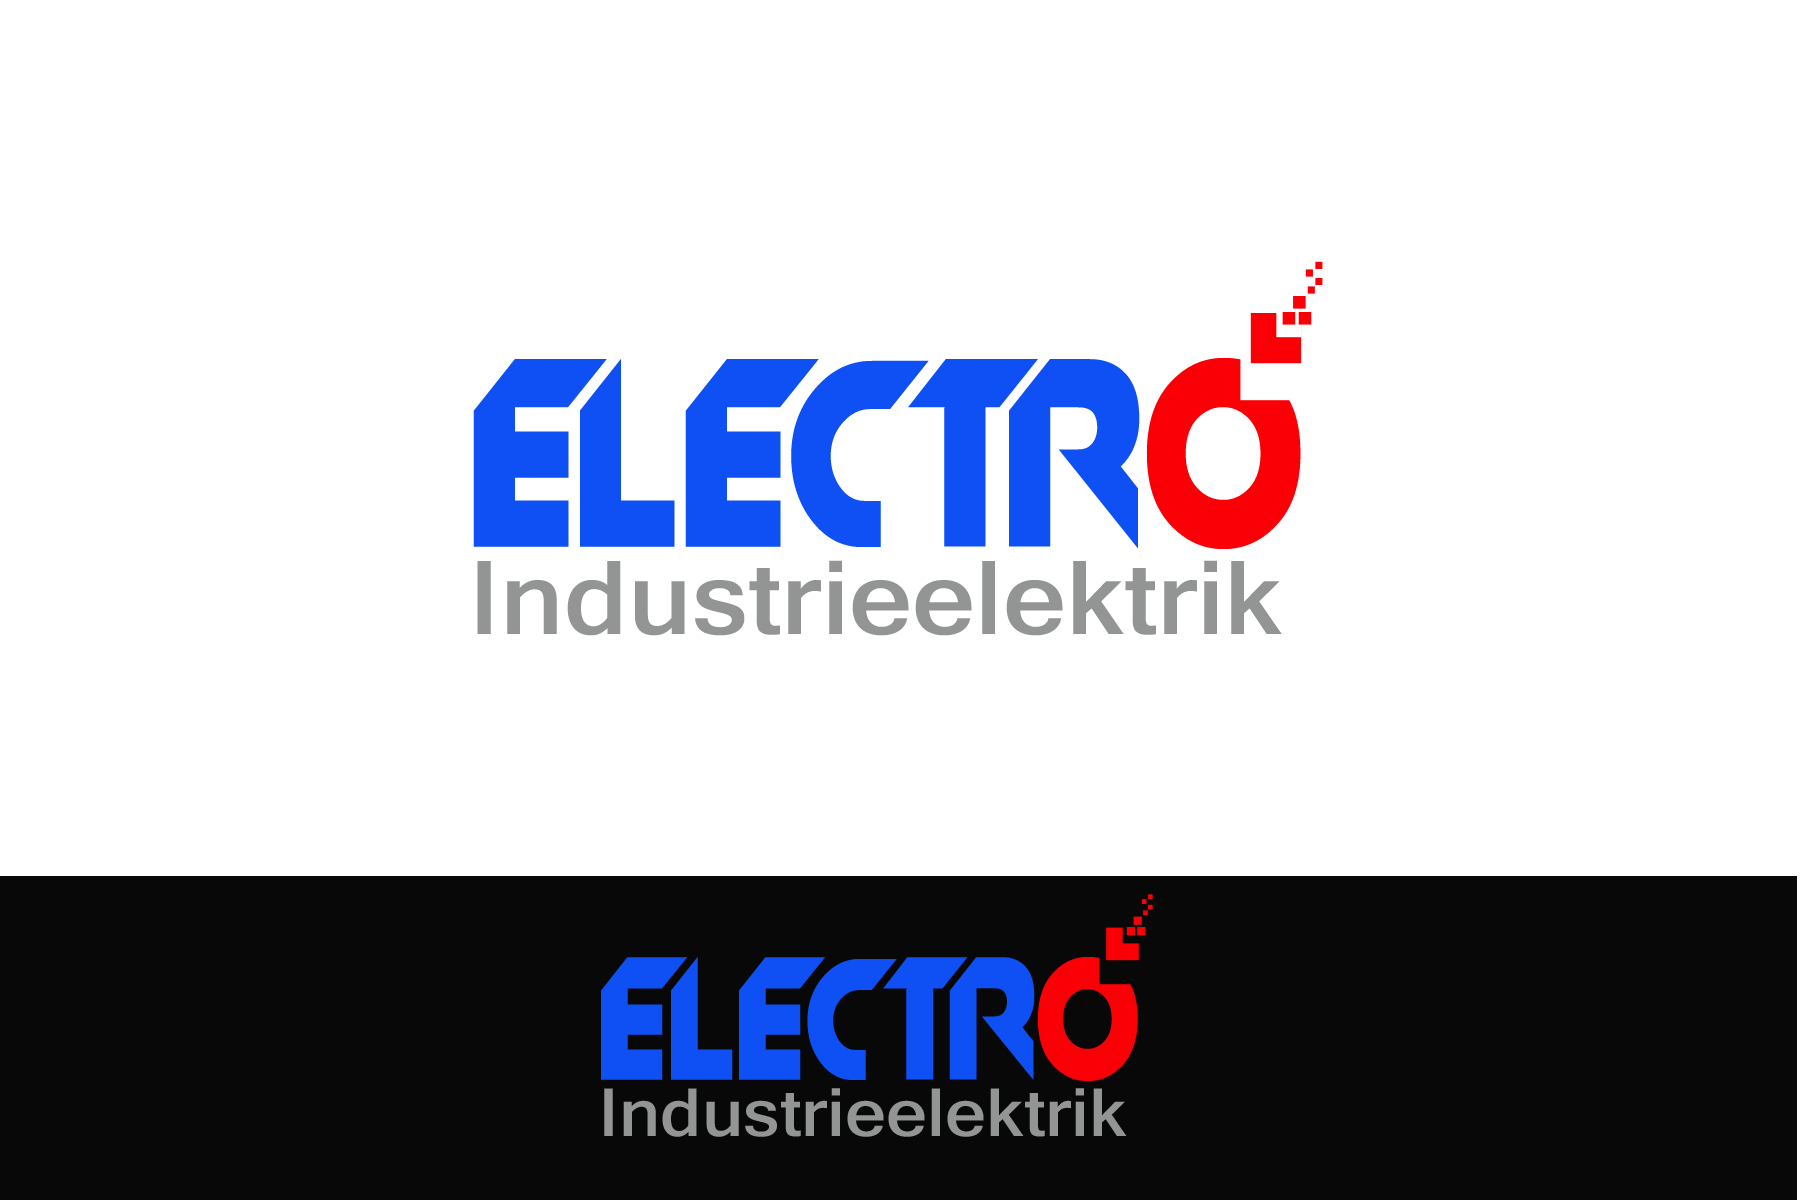 Logo Design by golden-hand - Entry No. 25 in the Logo Design Contest Unique Logo Design Wanted for Electro Industrieelektrik.